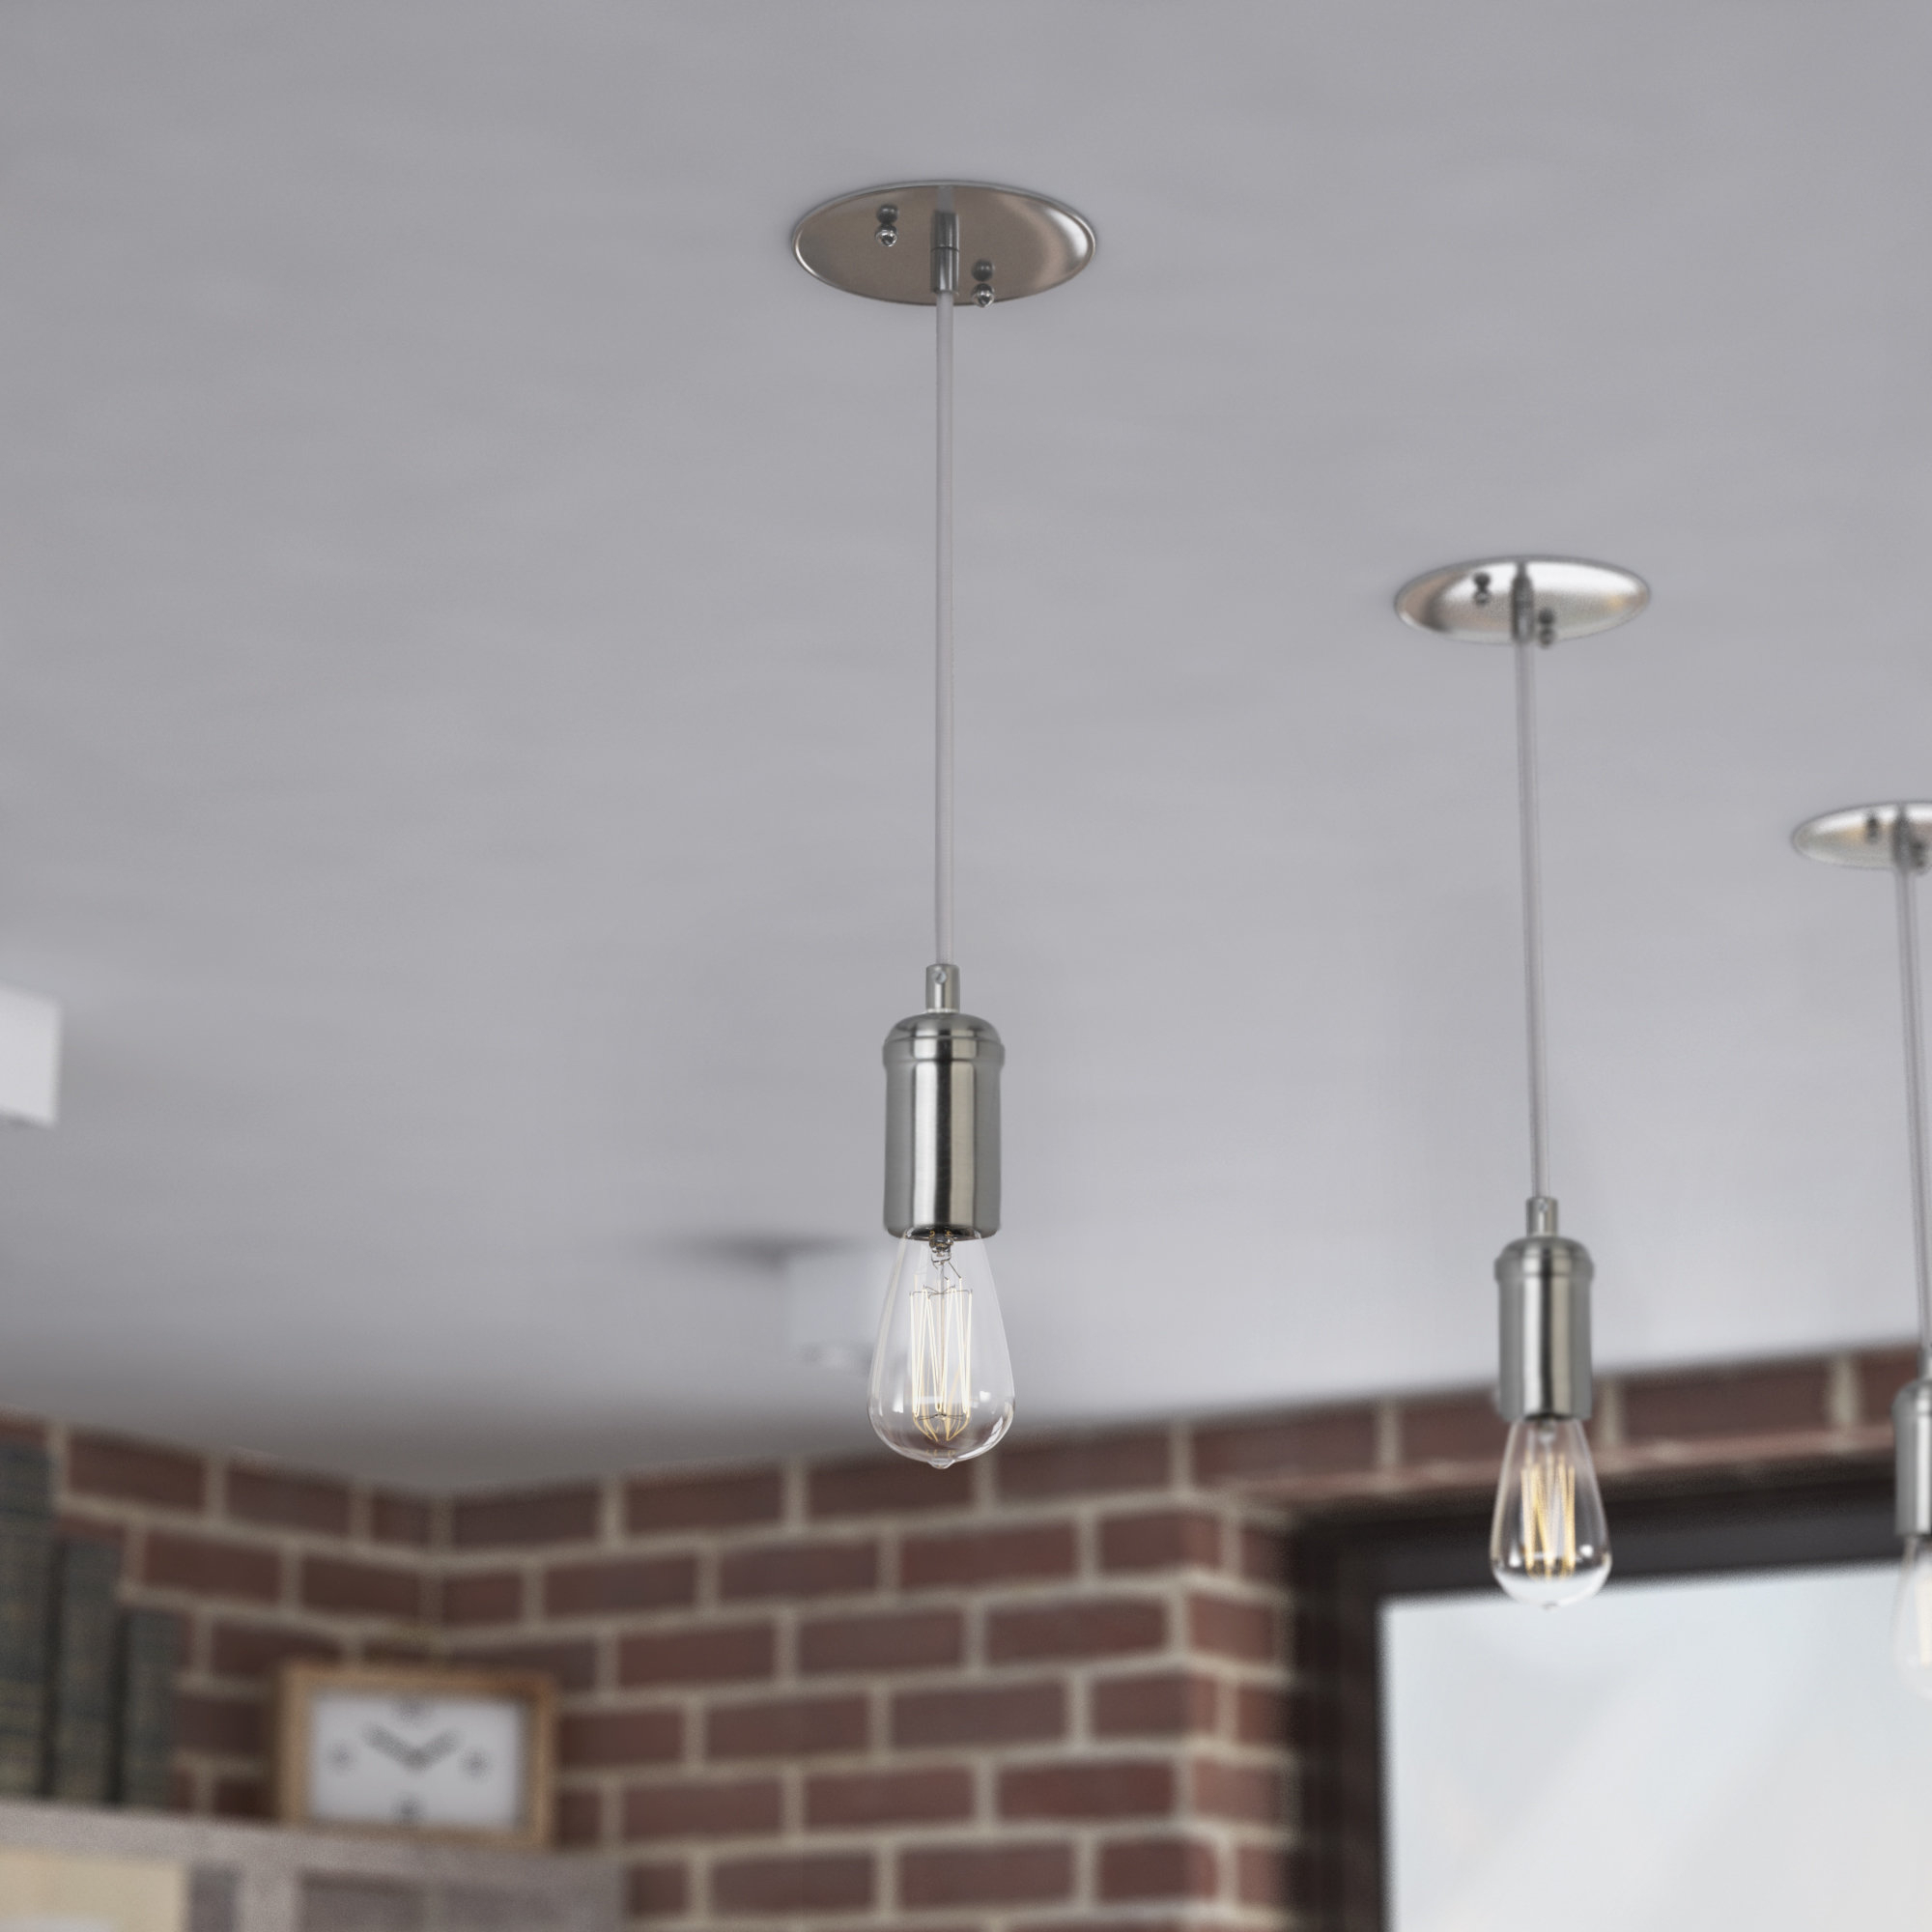 Best And Newest Bryker 1 Light Single Bulb Pendants Inside Bryker 1 Light Single Bulb Pendant (View 4 of 20)